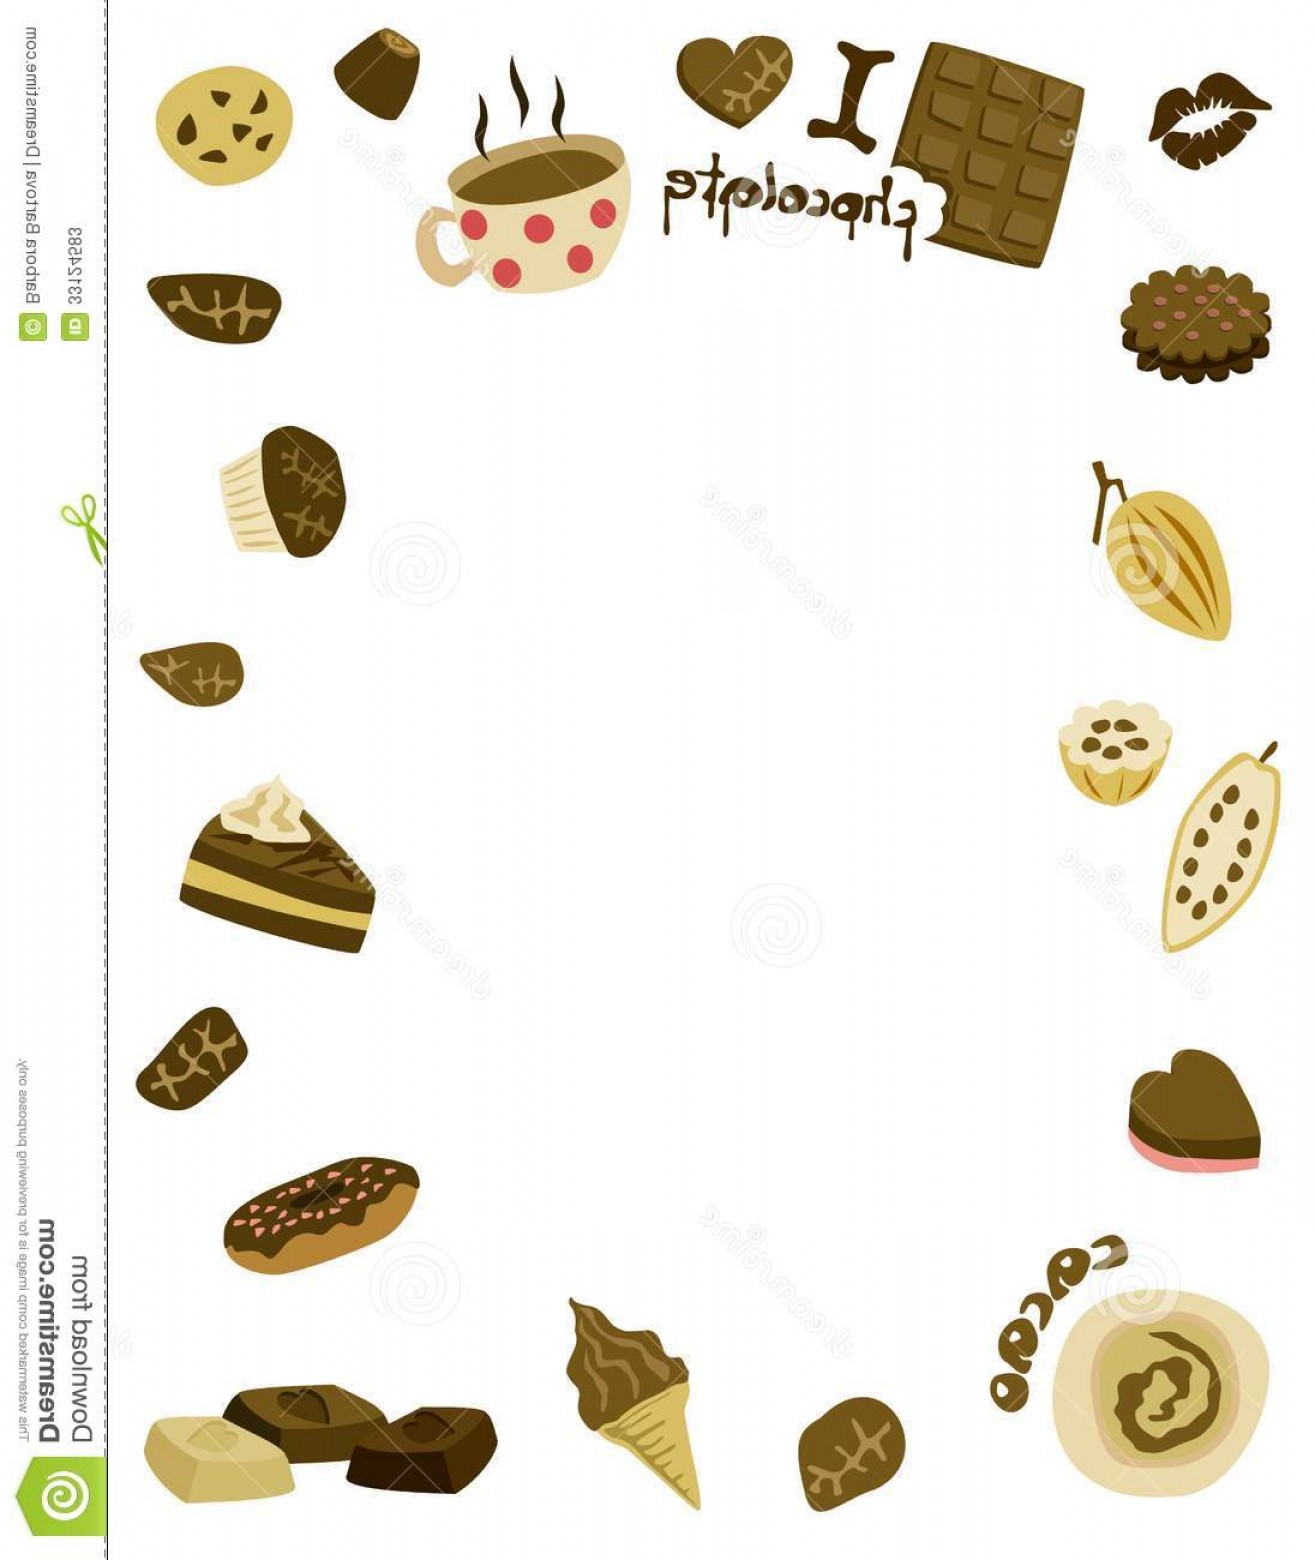 Chocolate Clip Art Vector: Stock Photos I Love Chocolate Frame Icons Cliparts White Background Vector Art Image